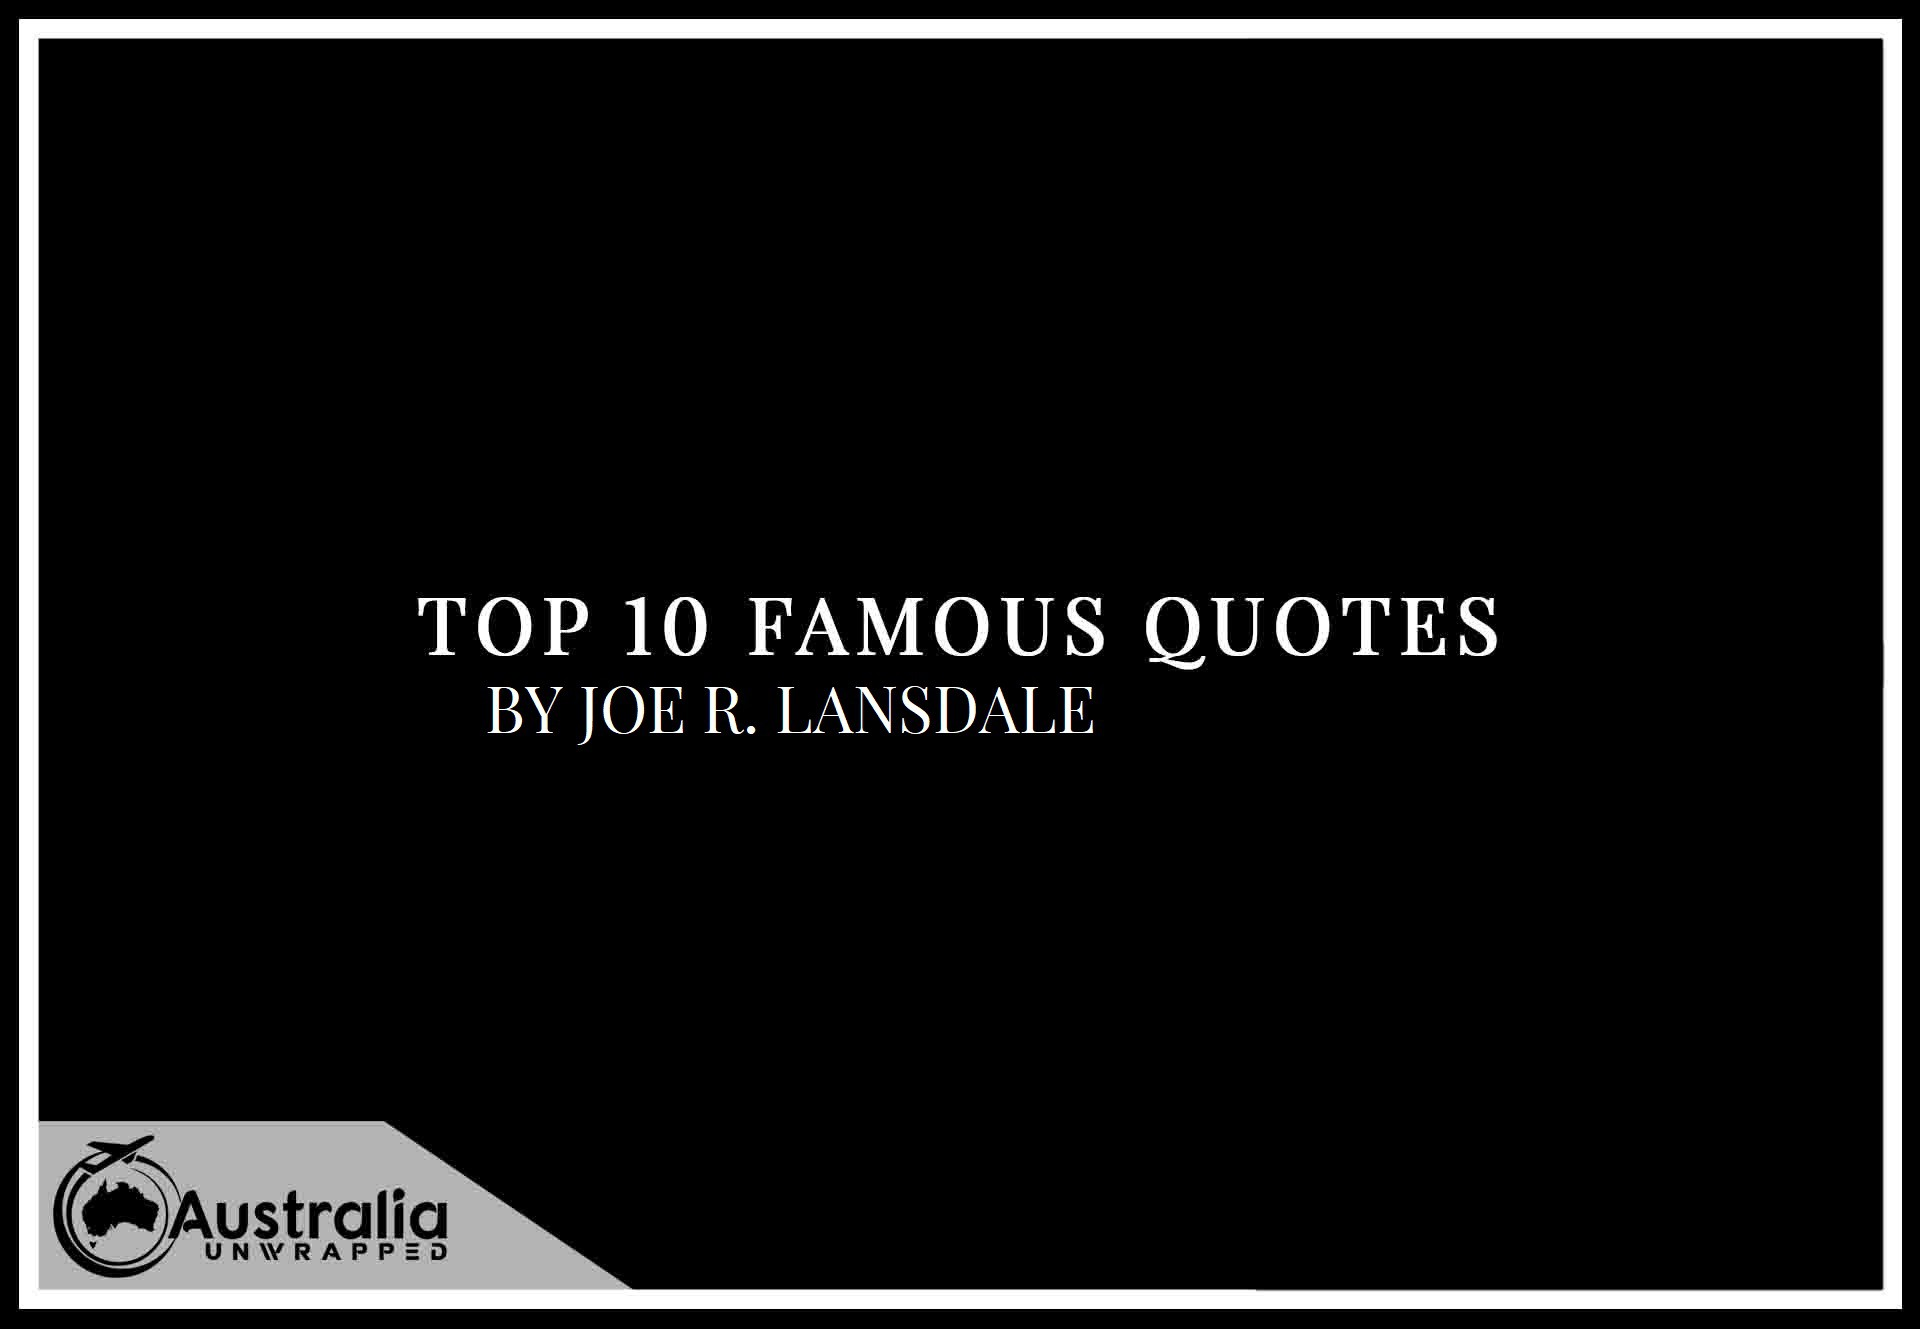 Top 10 Famous Quotes by Author Joe